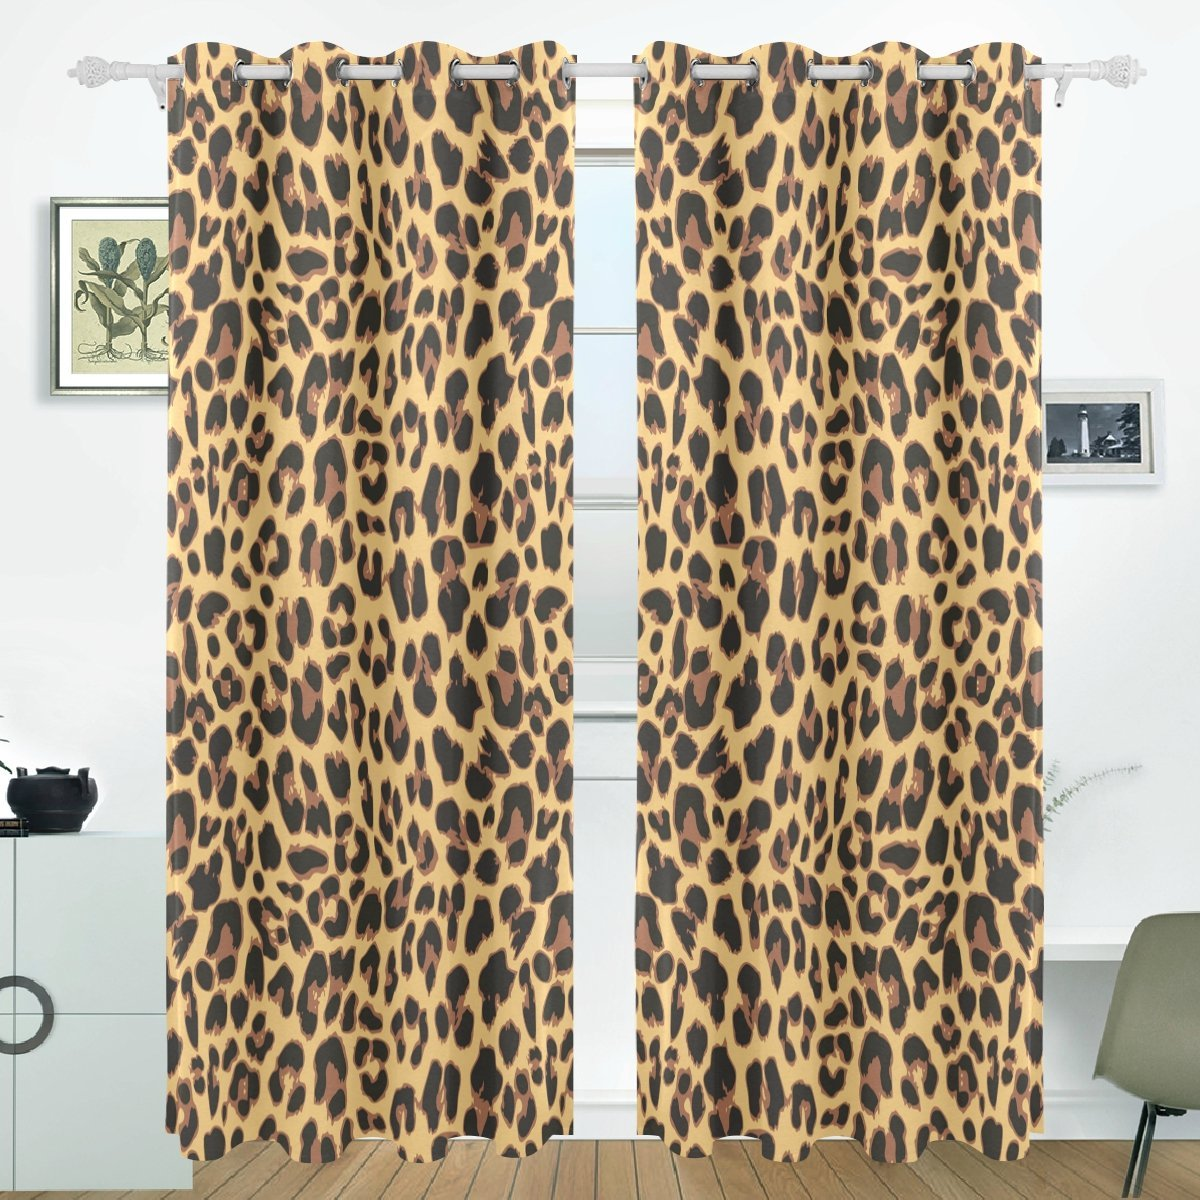 Popcreation Leopard Pattern Design Window Curtain Blackout